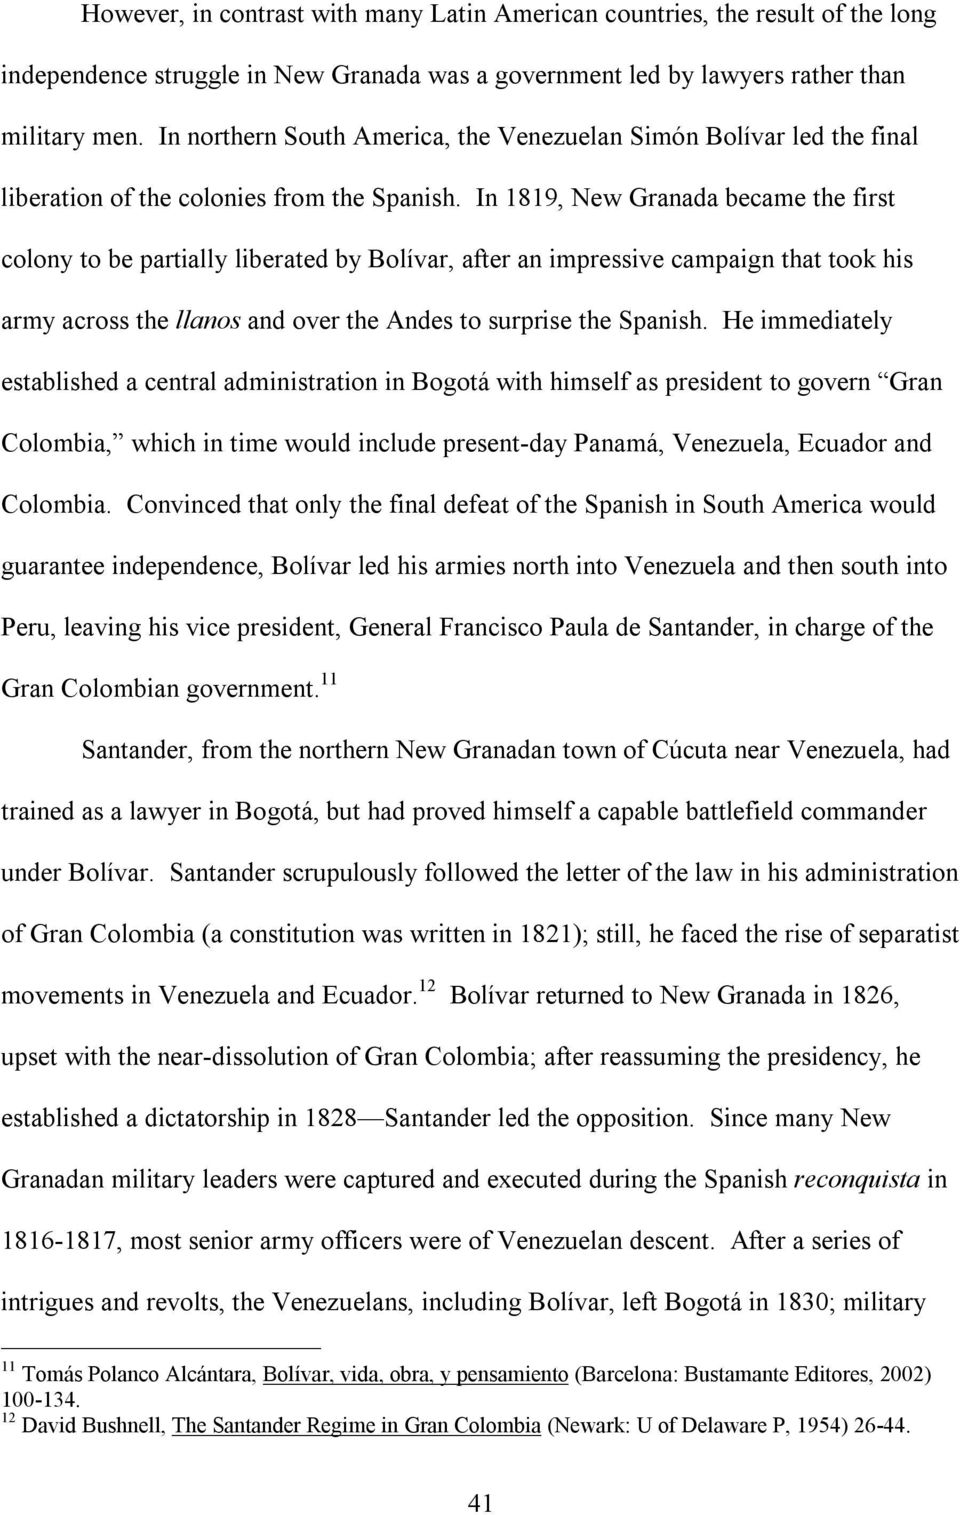 In 1819, New Granada became the first colony to be partially liberated by Bolívar, after an impressive campaign that took his army across the llanos and over the Andes to surprise the Spanish.